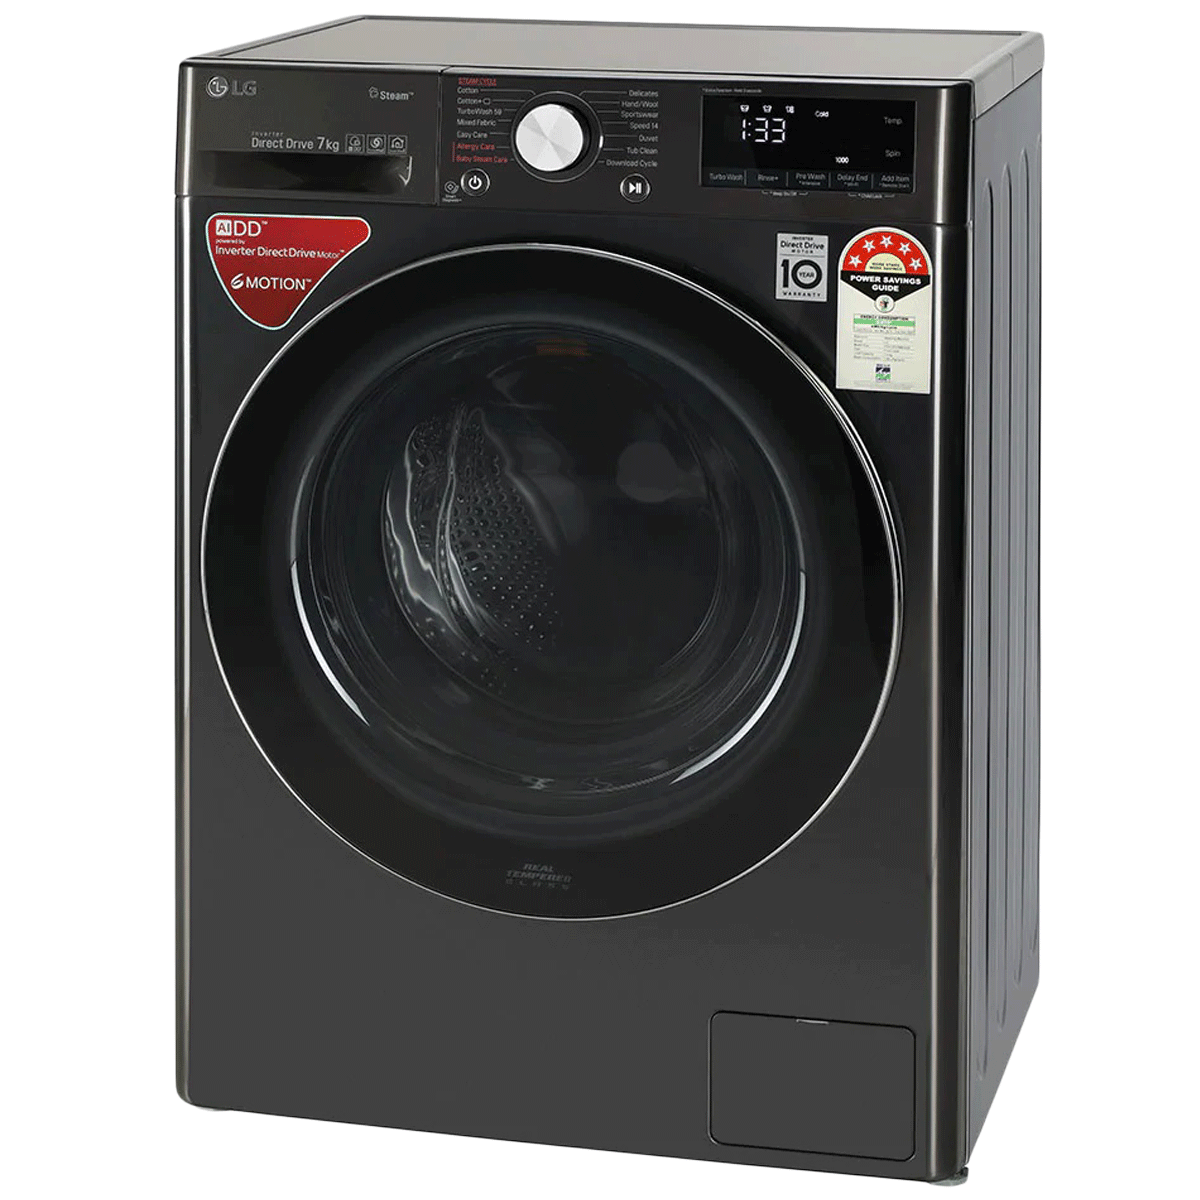 LG 7 kg 5 Star Fully Automatic Front Load Washing Machine (AI Direct Drive Technology, FHV1207ZWB, Black Steel) 3